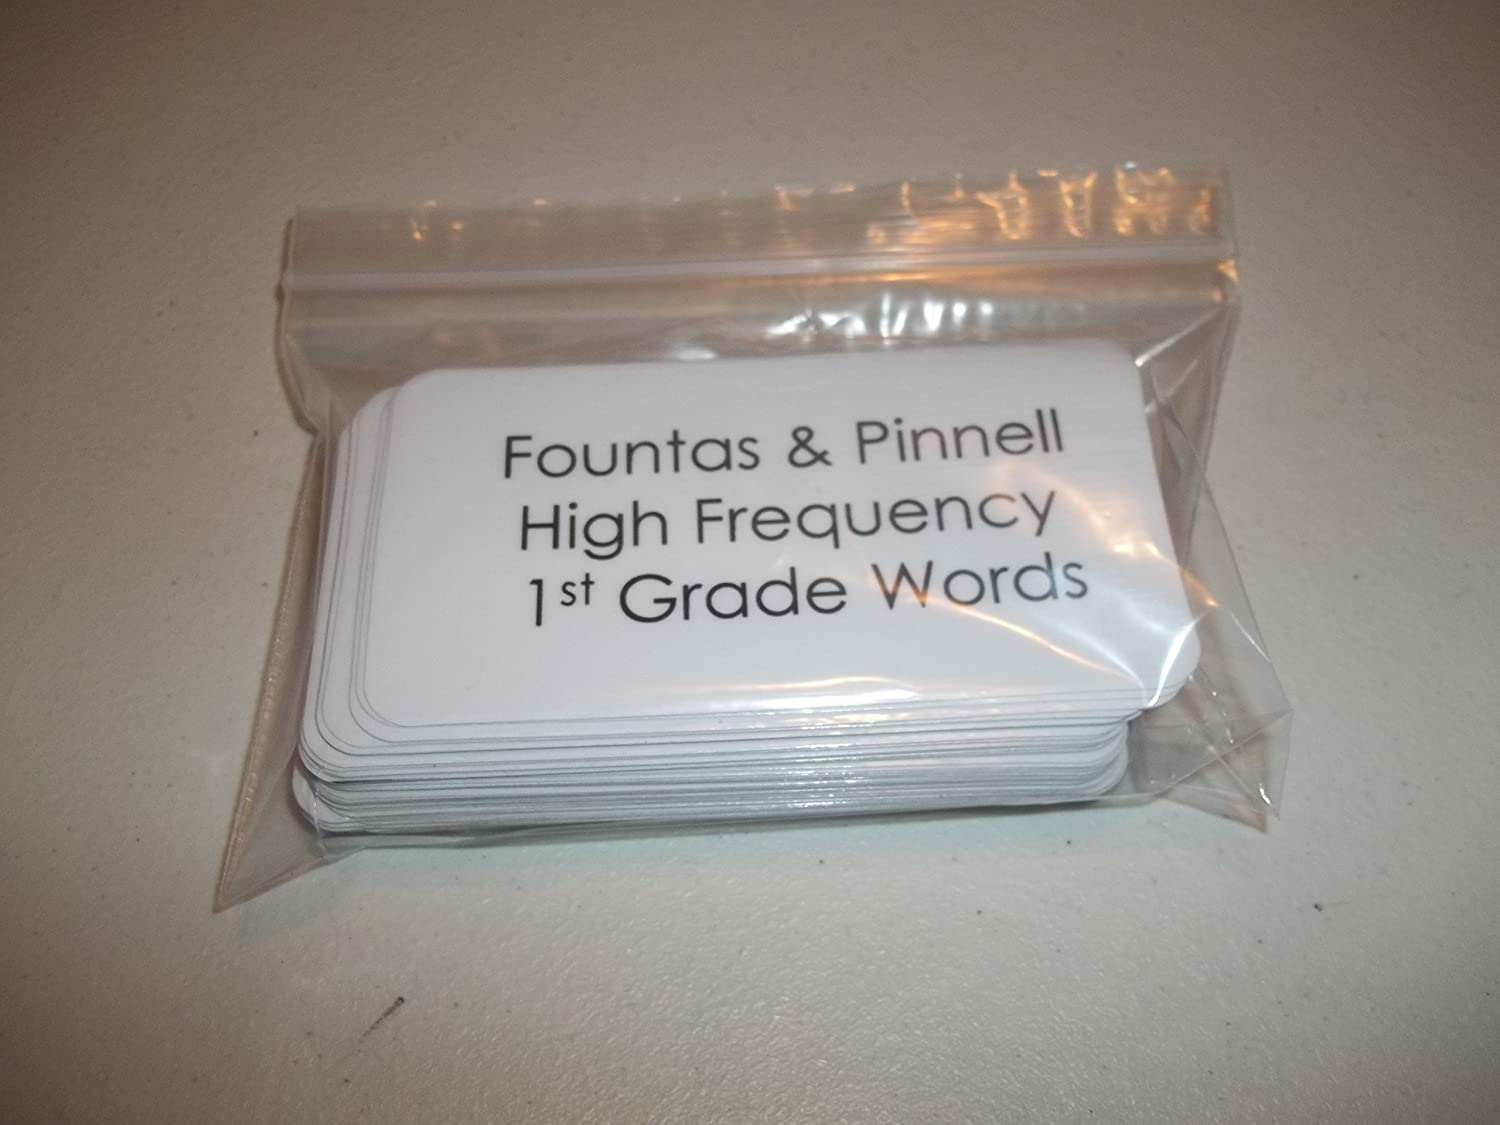 57 laminated Fountas and Pinnell based First Grade high frequency flashcards set.